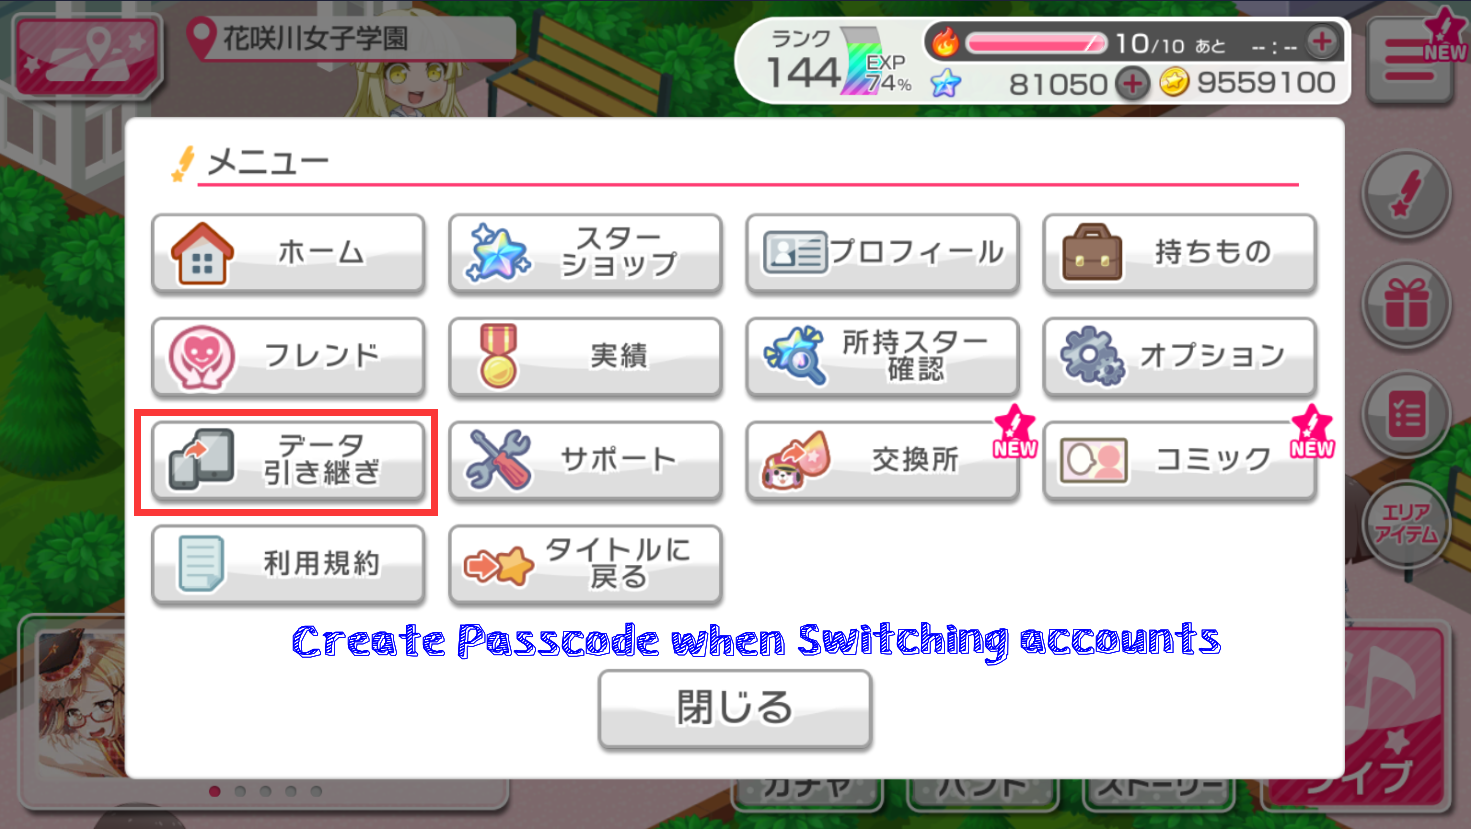 【JP】(GIFT FOR 2+)TWO × 4*,104000+ Gems,3 tks BanG Dream,Girls Band Party account 9